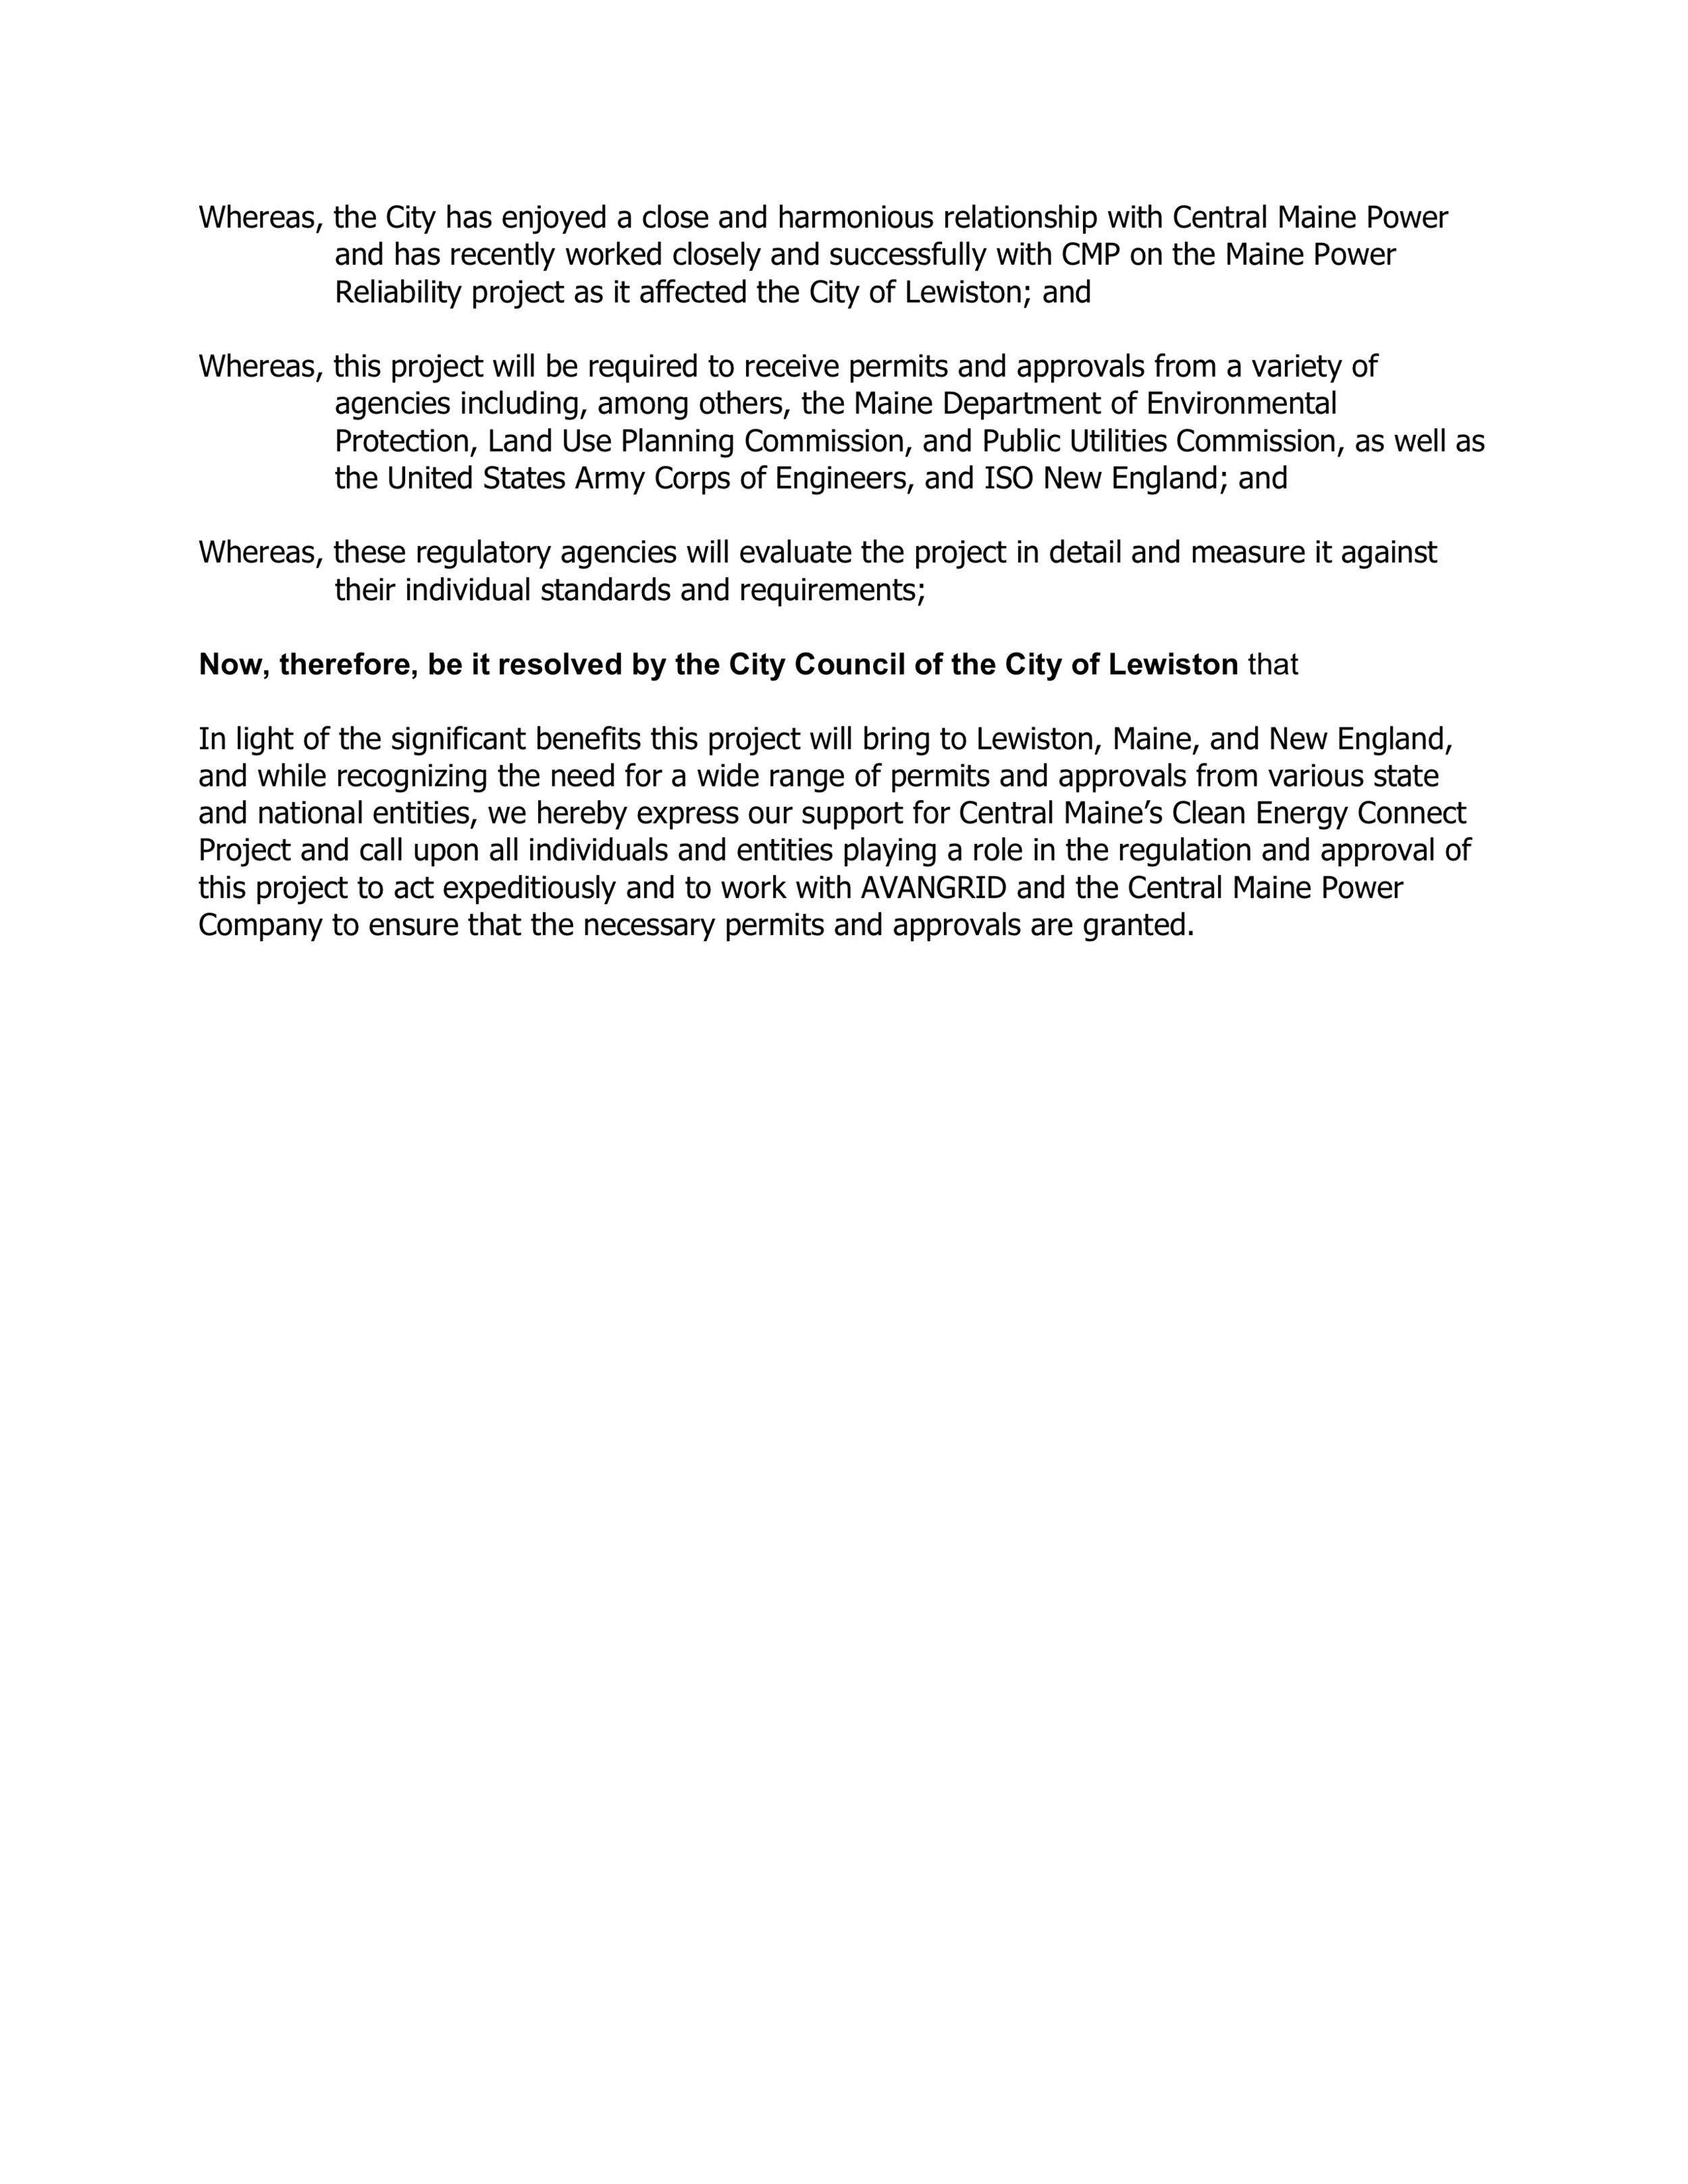 Resolve pg 2- Supporting CMP Clean Energy Connect.png